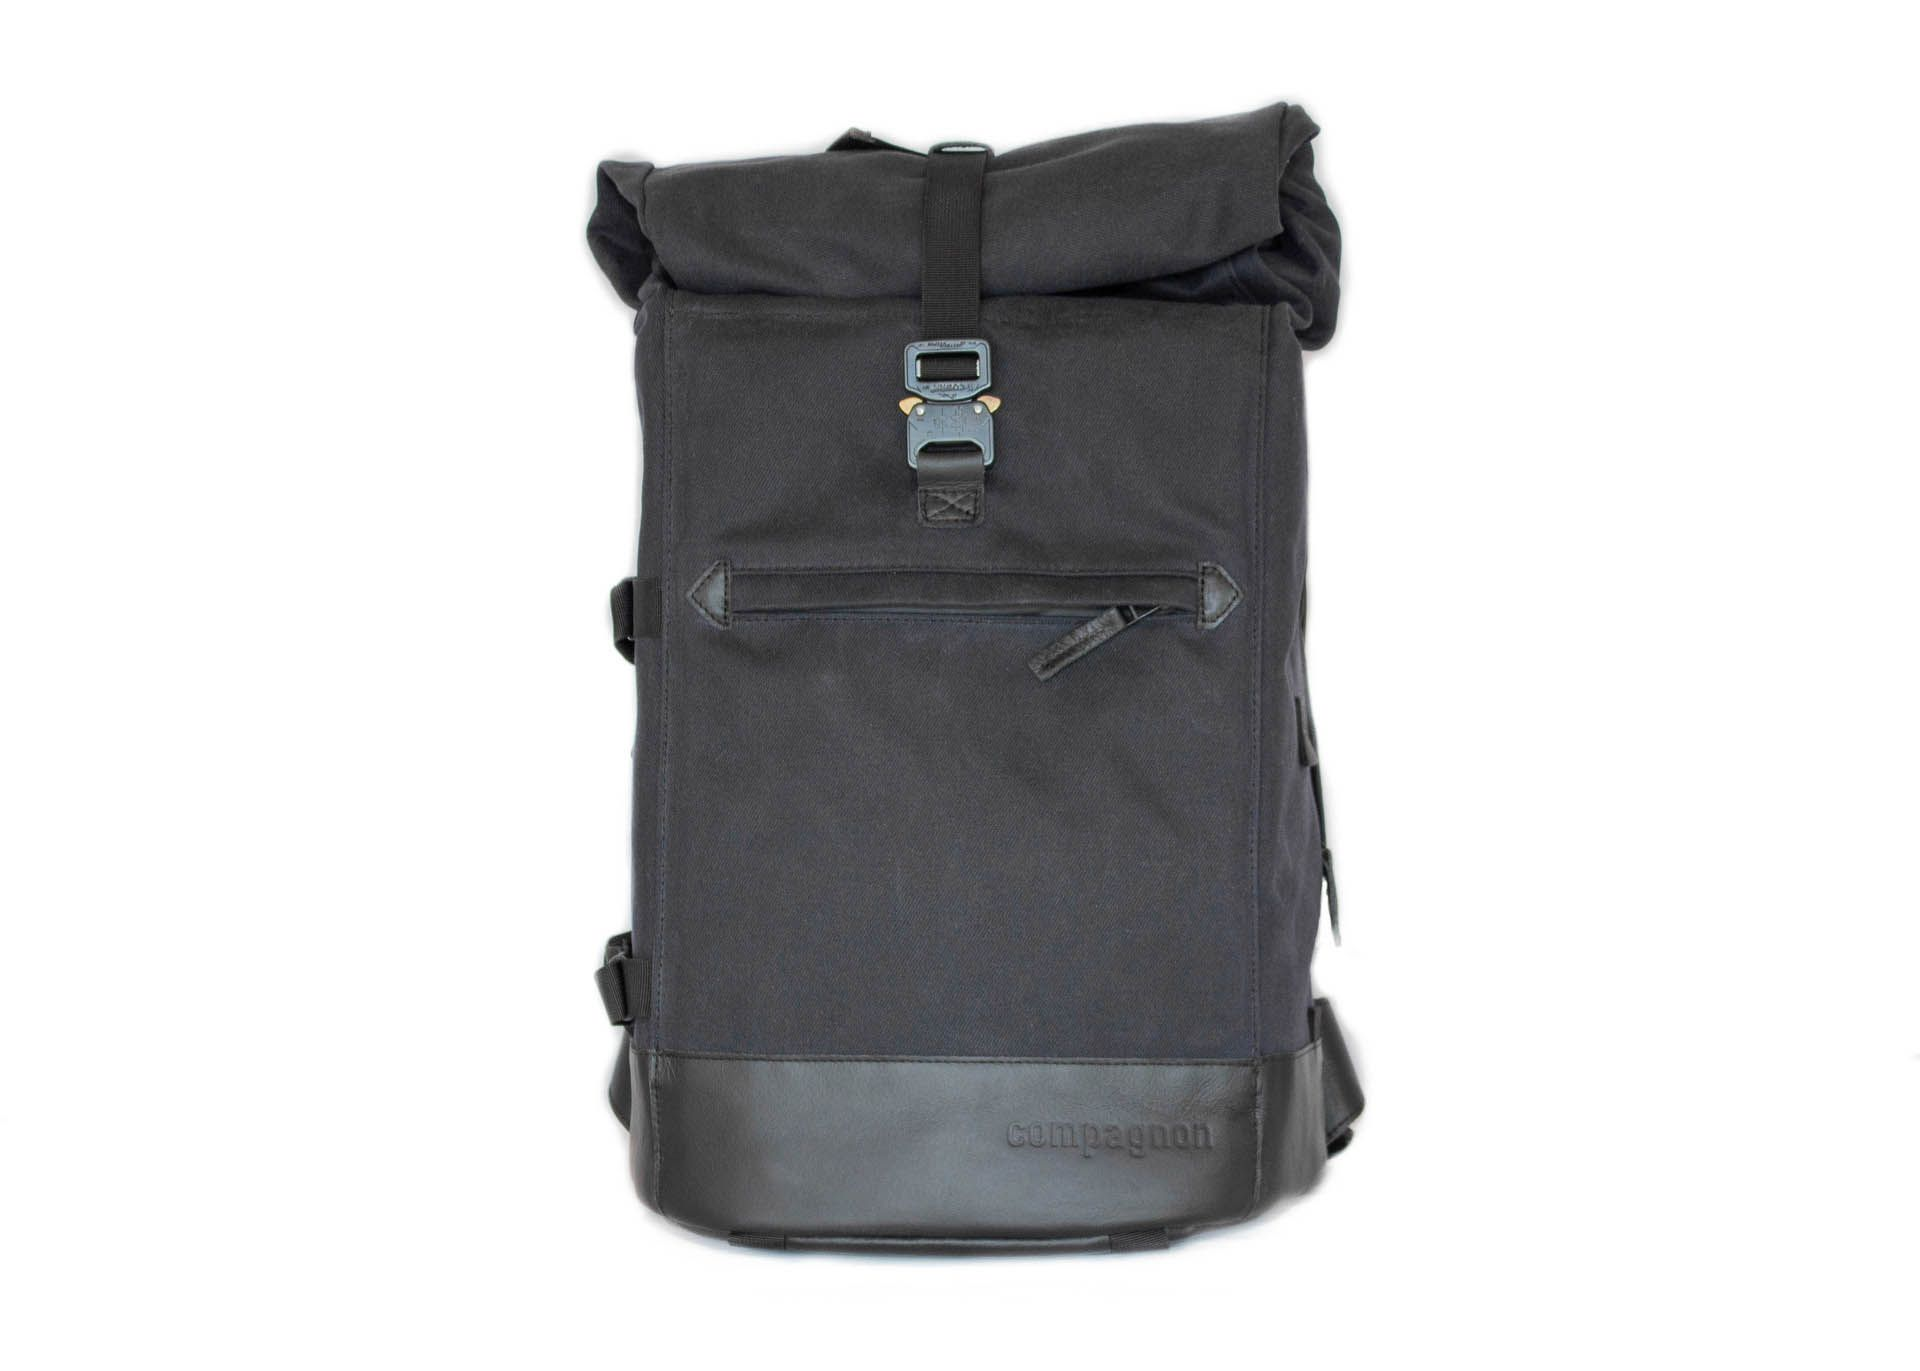 Ortlieb Commuter Daypack City | REI Co op | Commuter bag